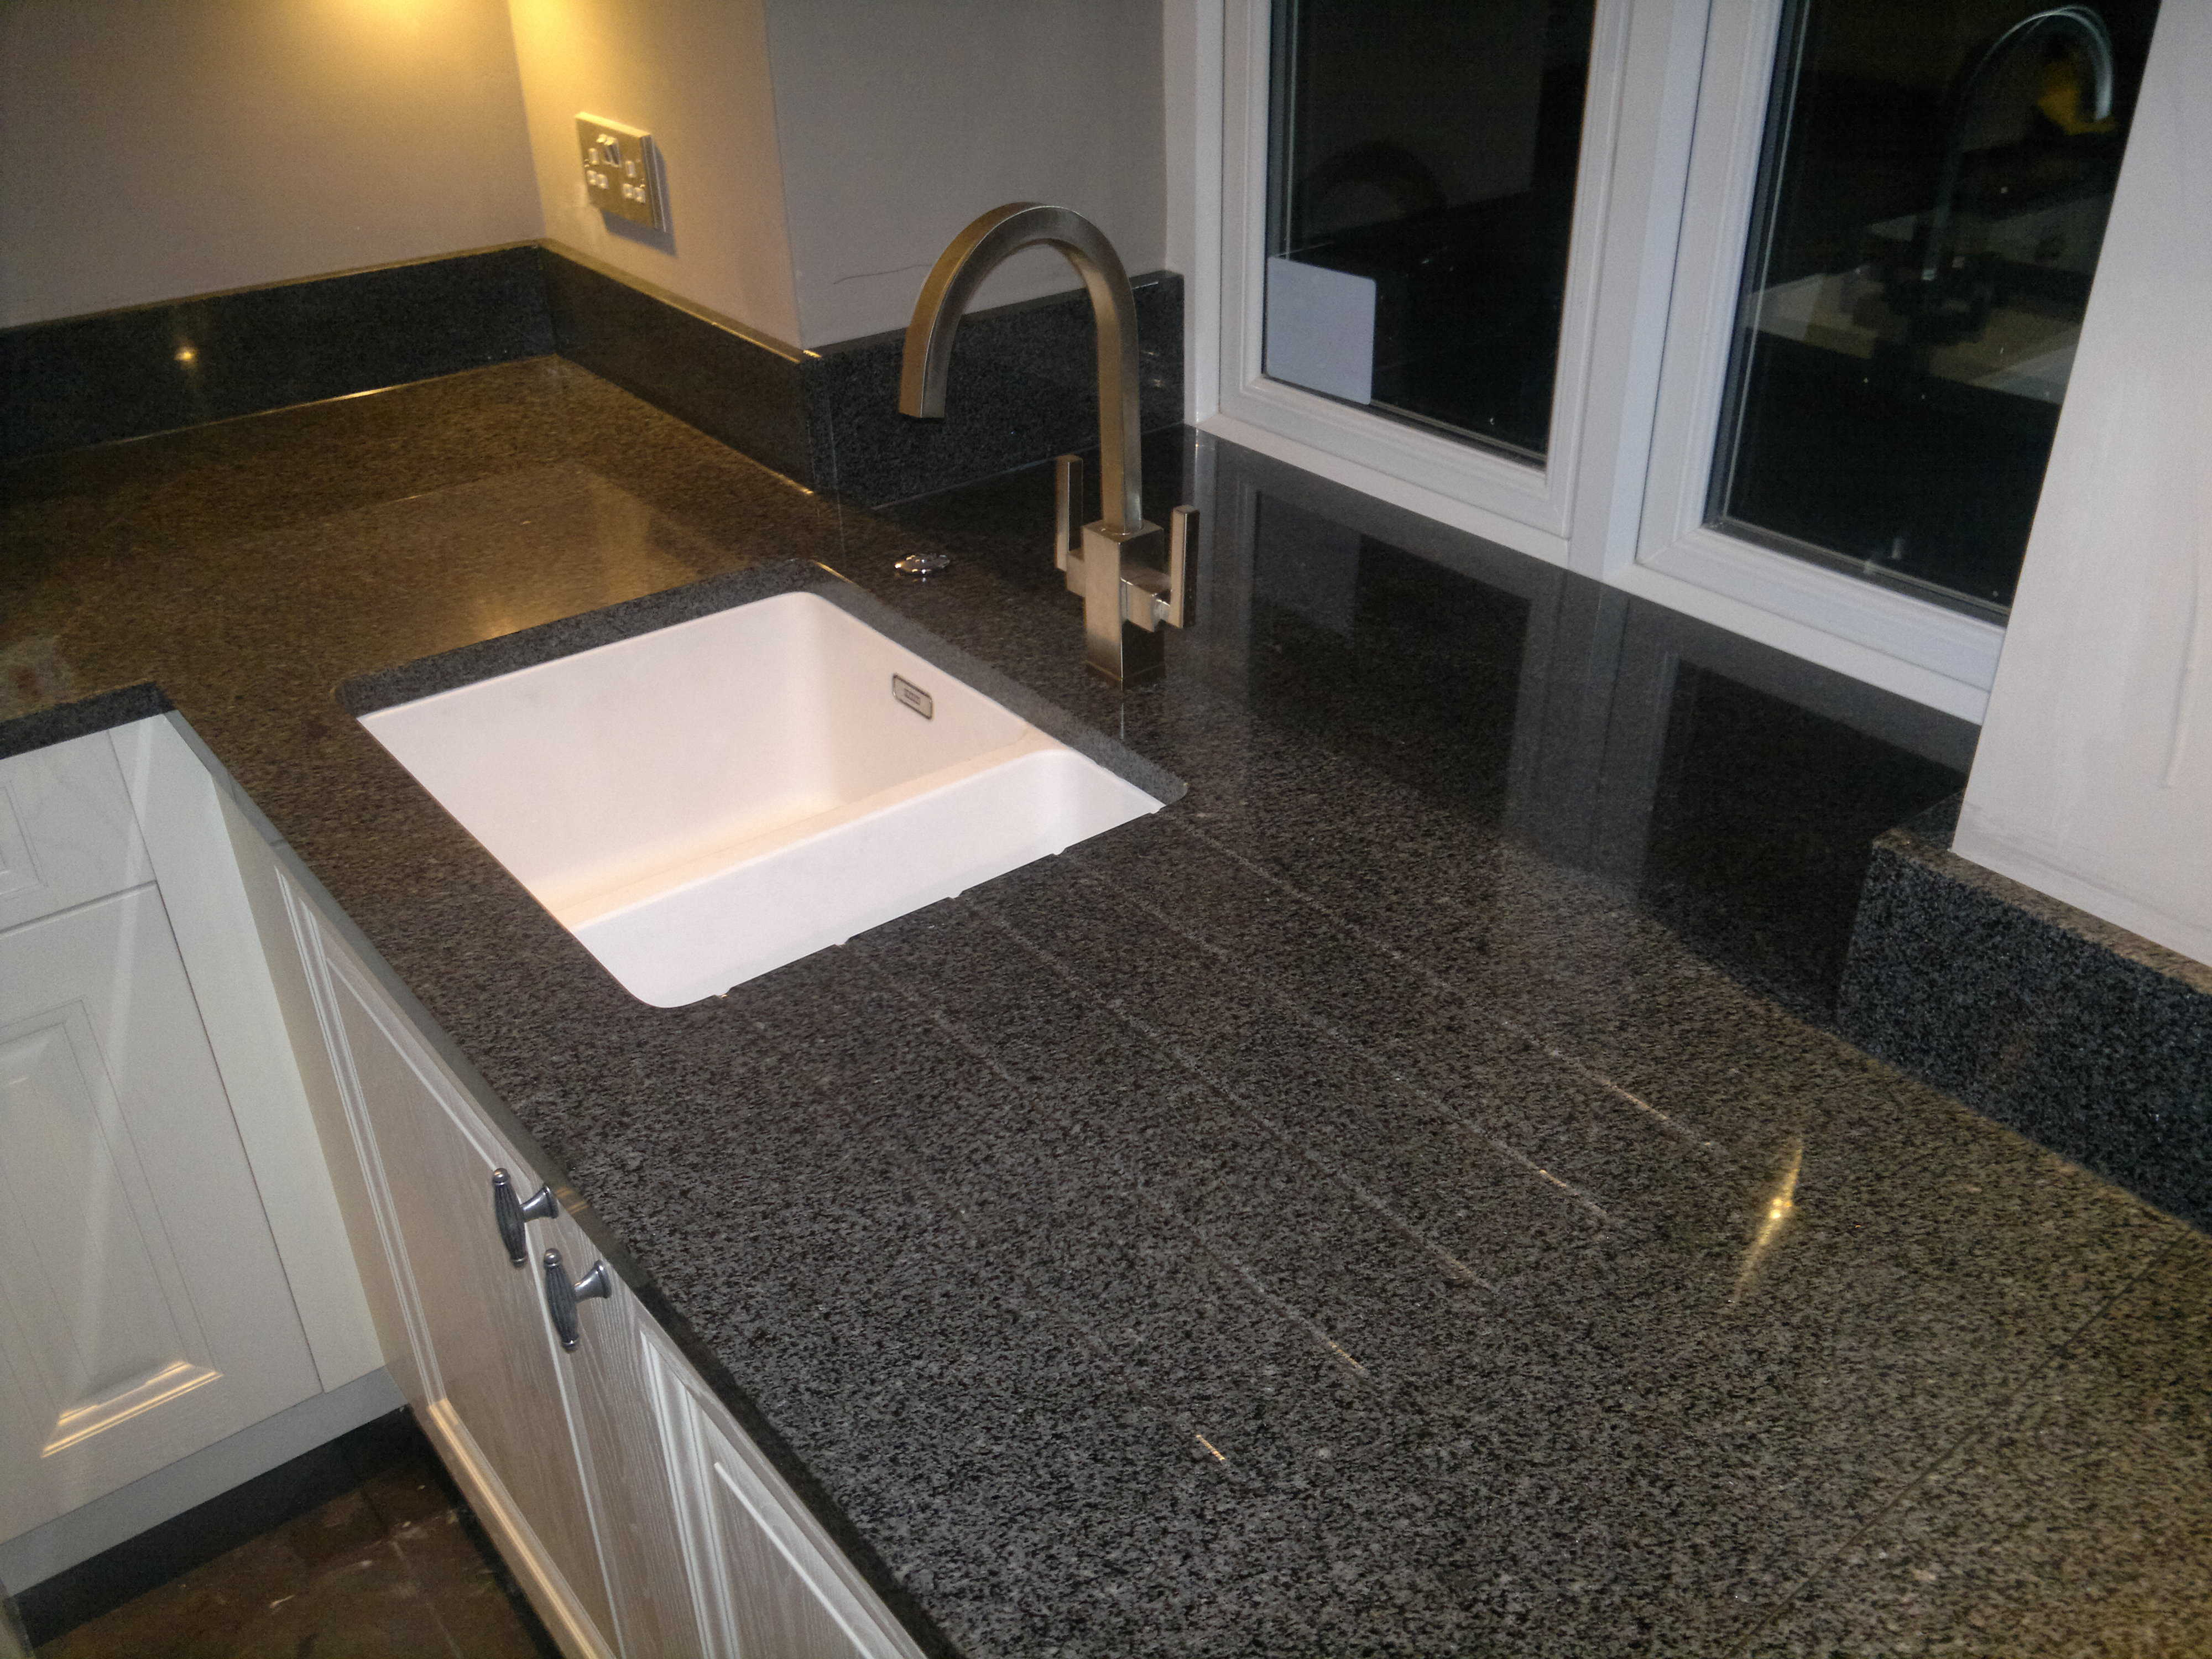 Stock Clearance And Heavy Discounts On Granite Tiles And Sinks